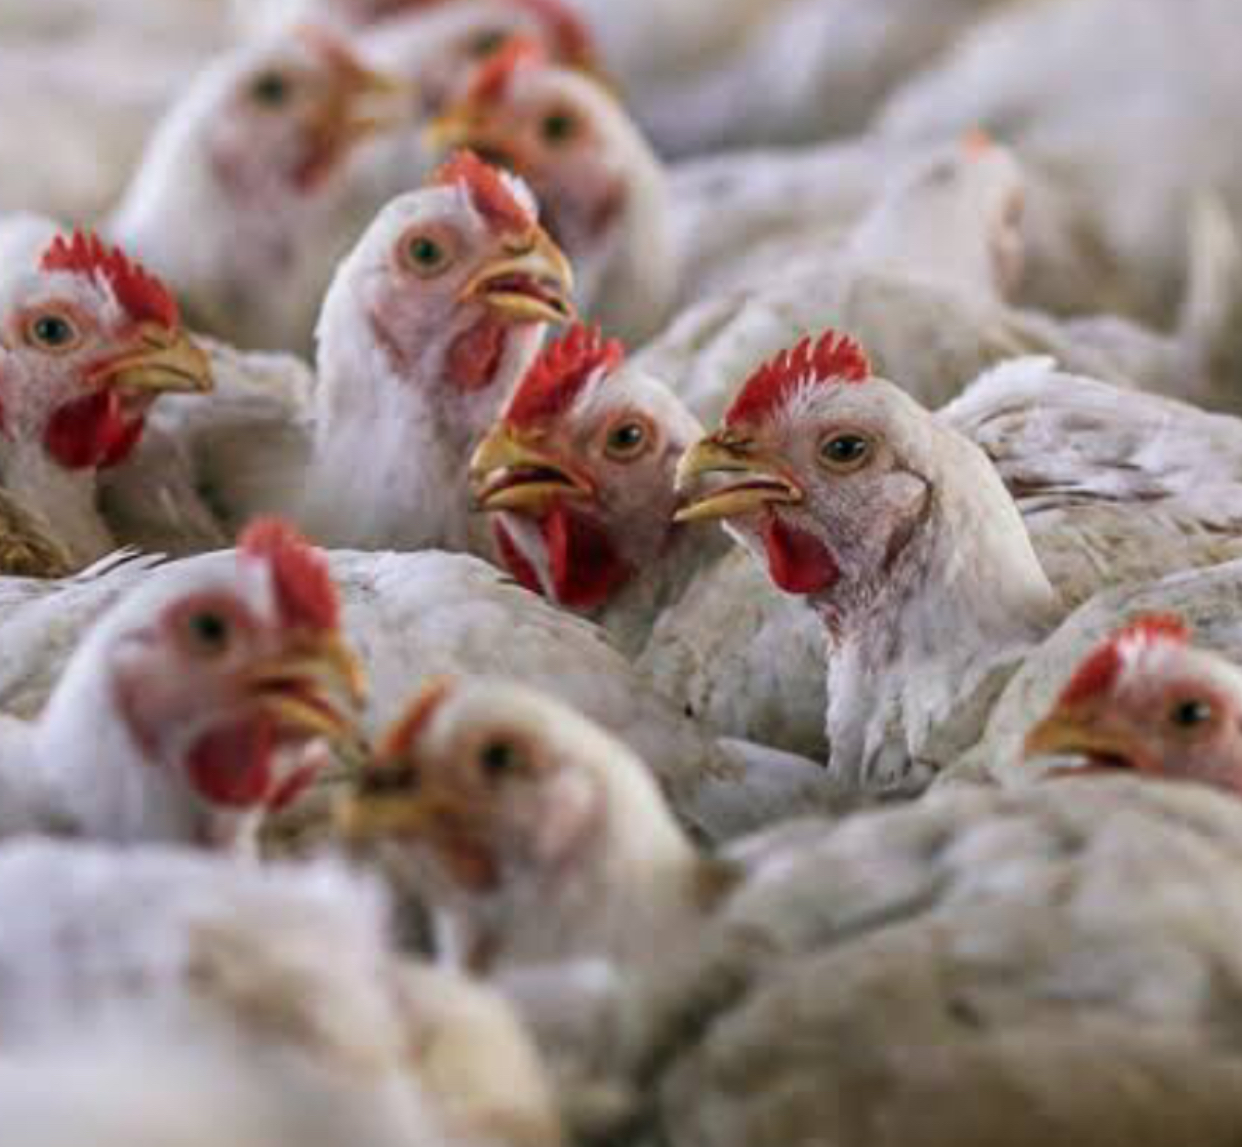 Consumers Association urges government to ban South African poultry products amid bird flue outbreak